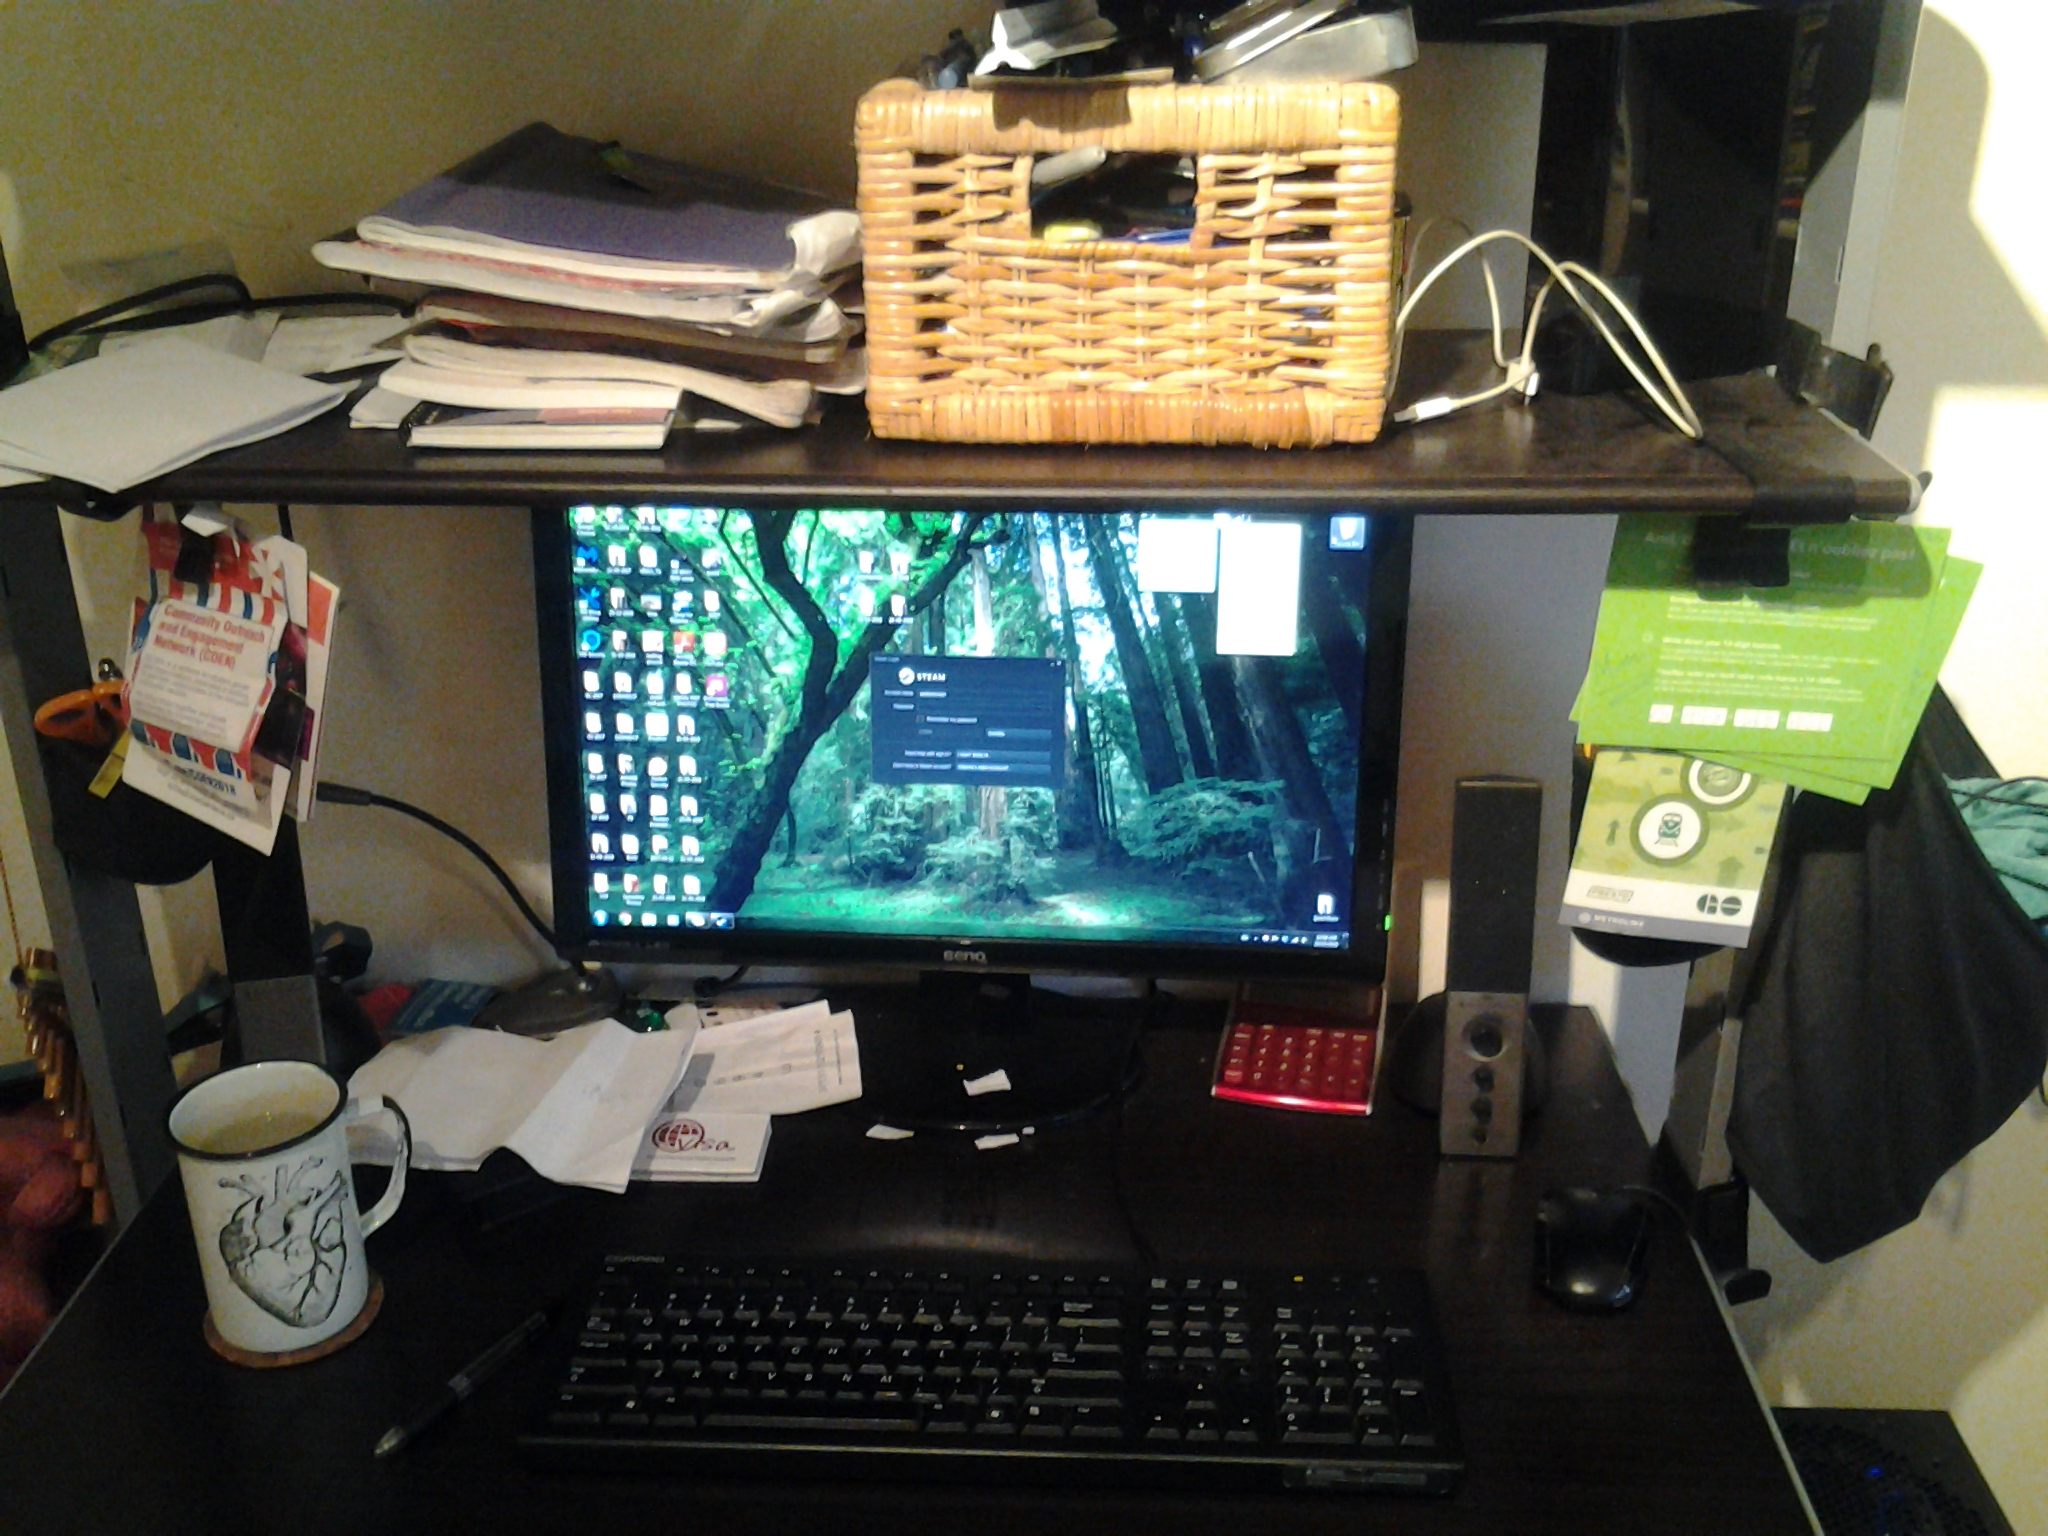 My desk before tidying it up a bit. Caption: BEFORE